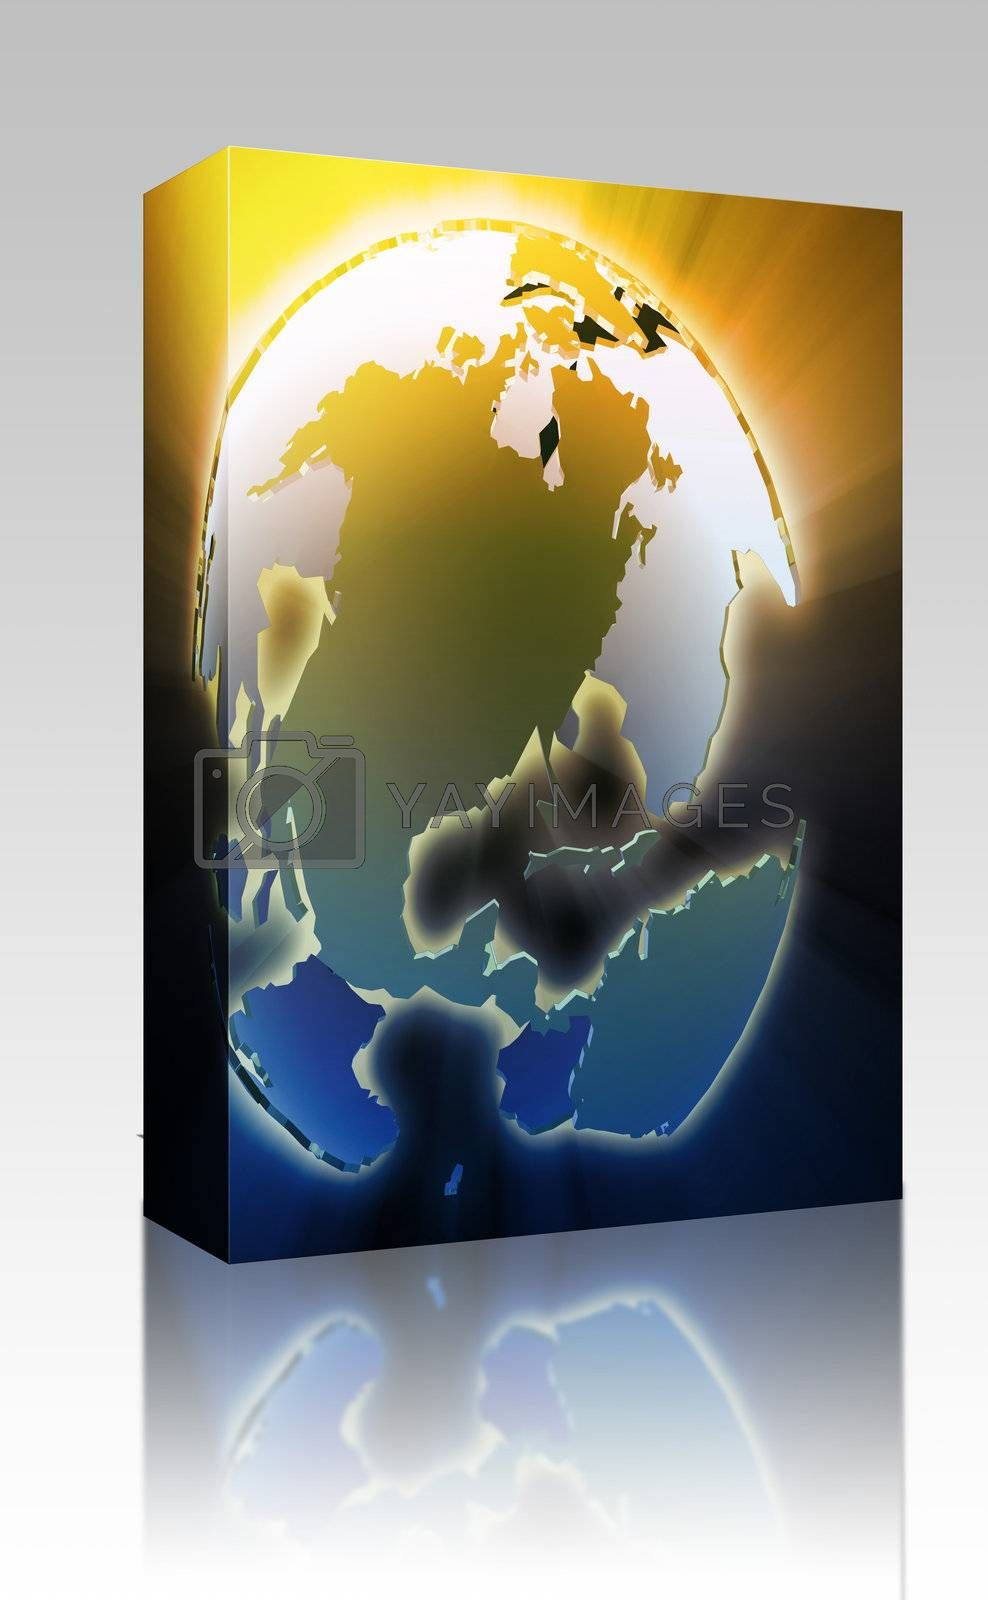 Software package box Globe map illustration of the Americas continents